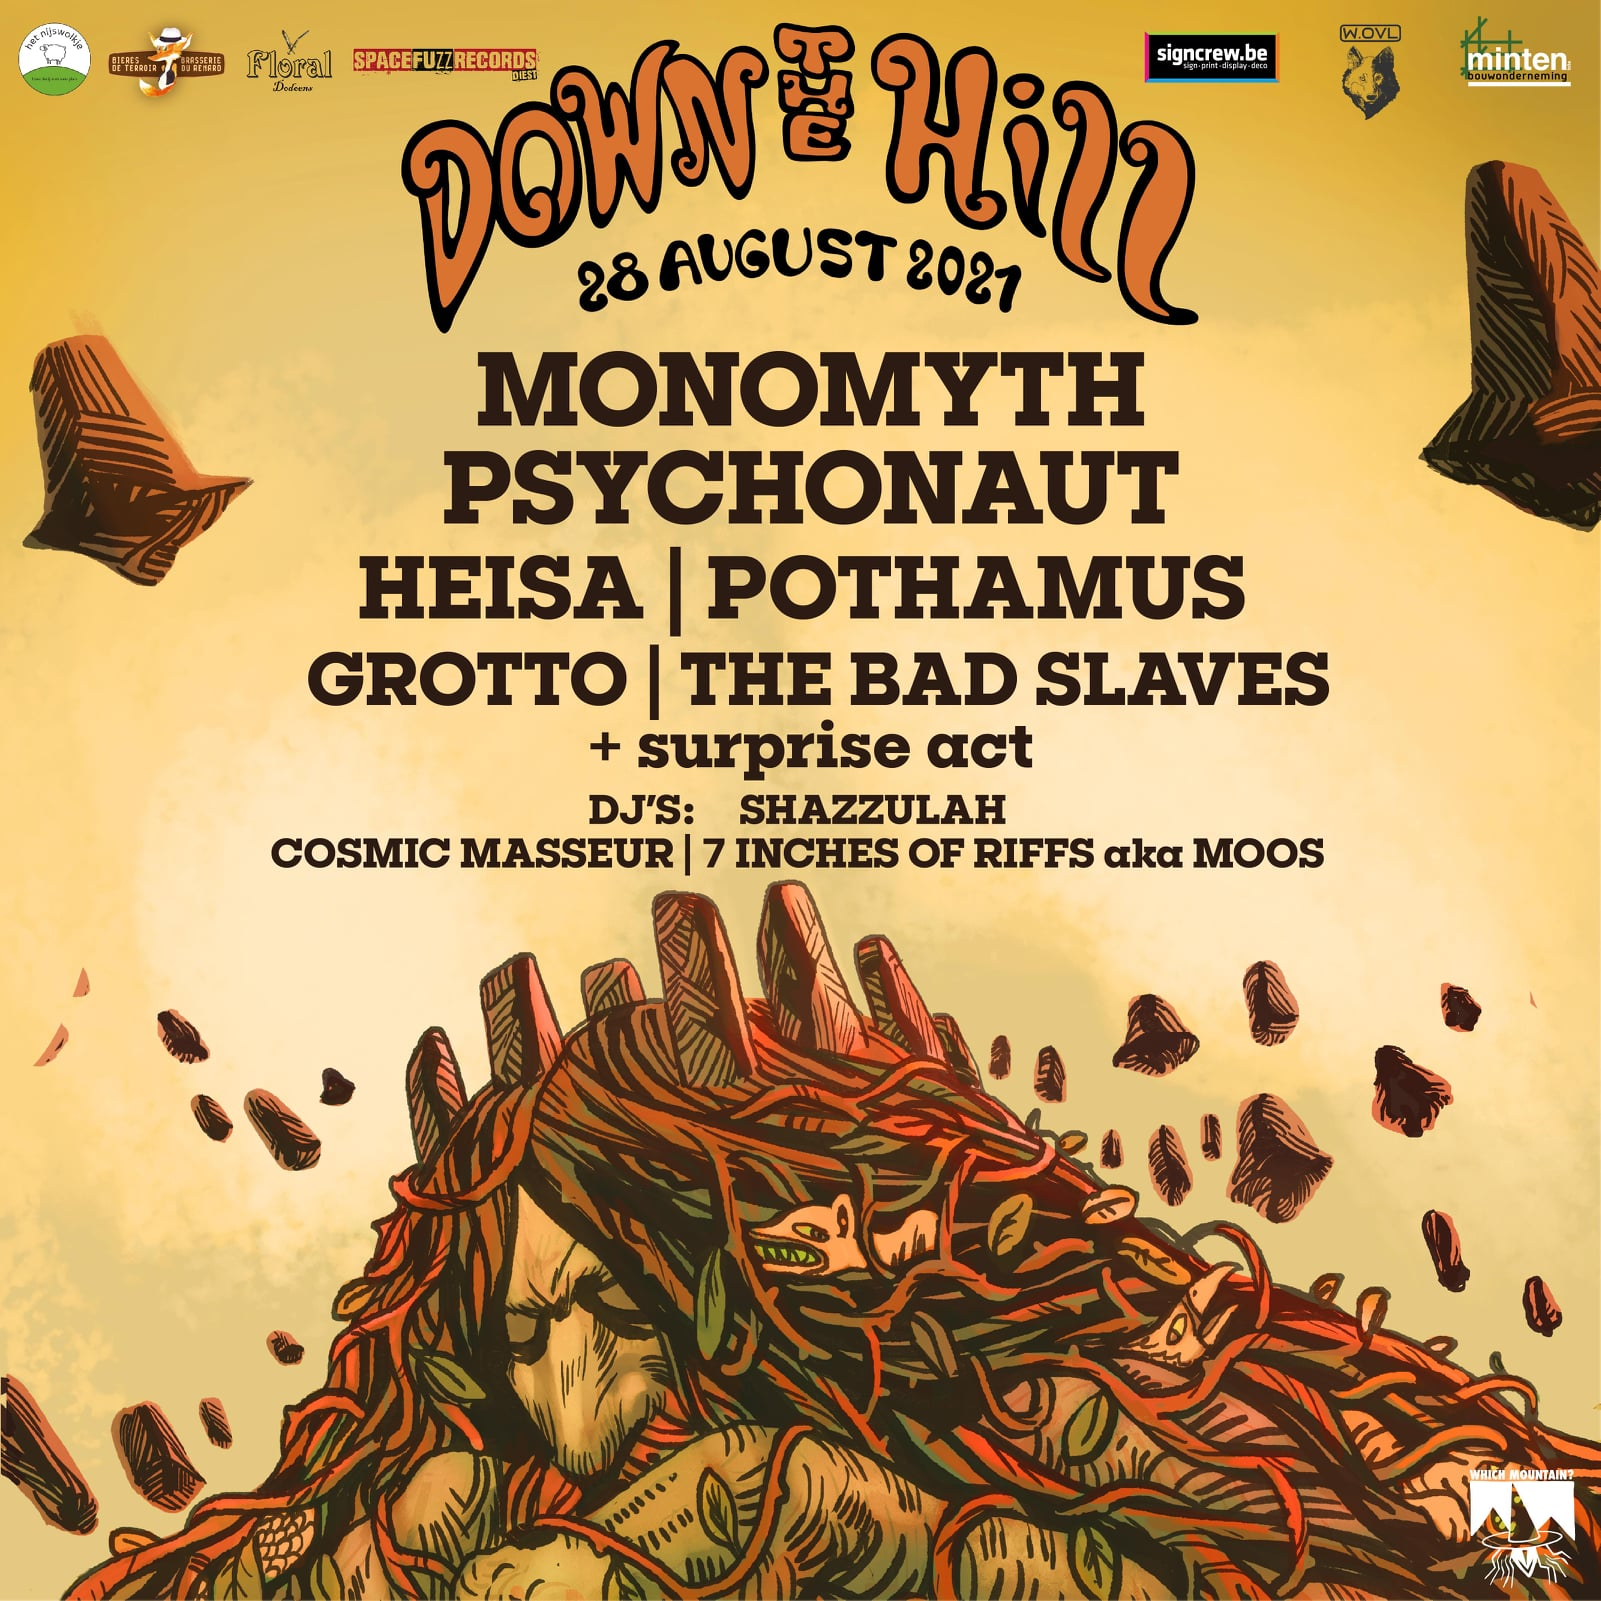 down the hill 2021 poster